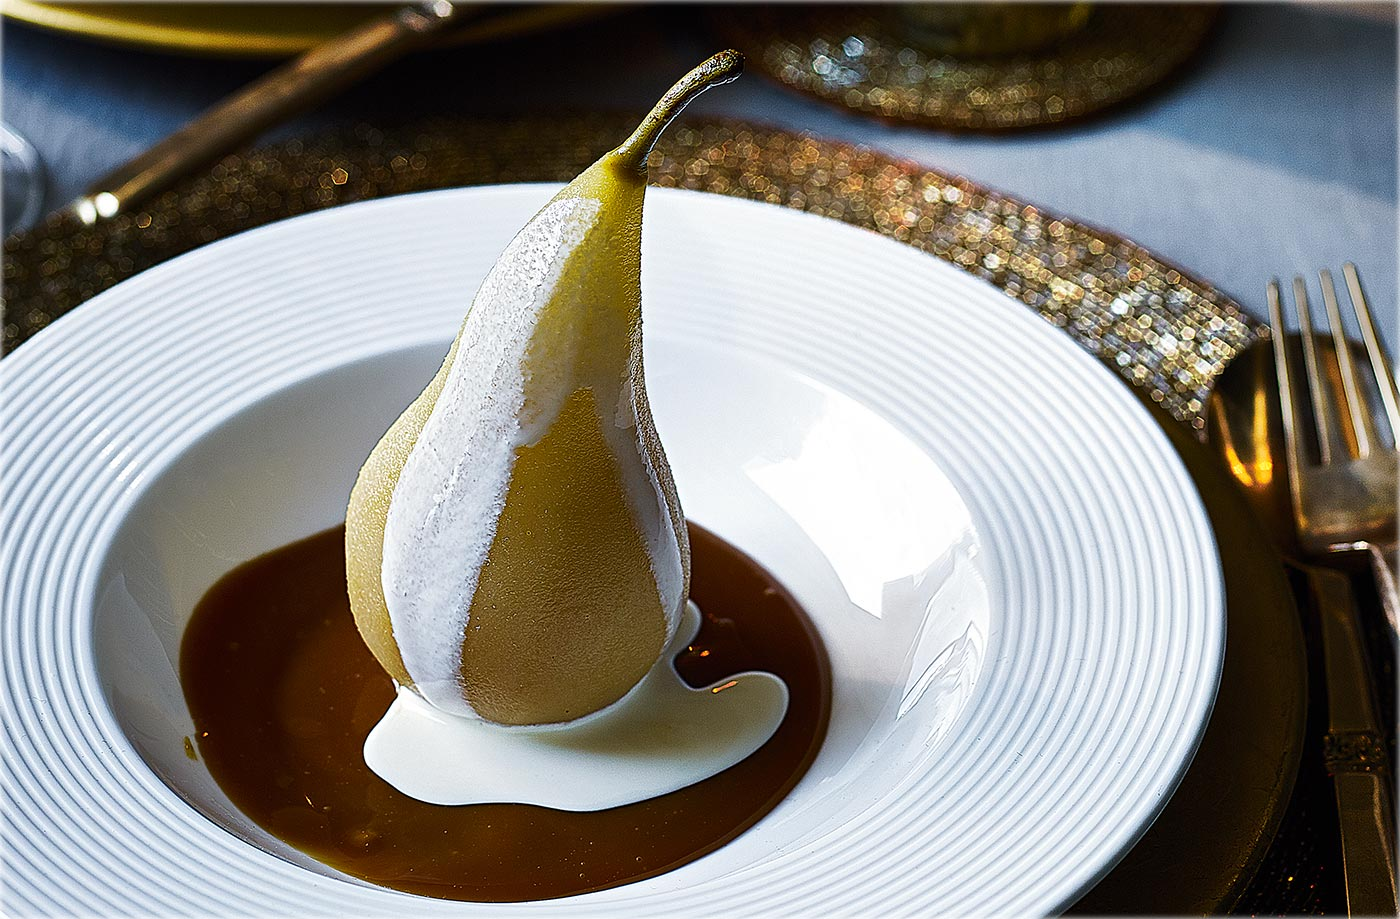 Vanilla poached pears with salted caramel sauce recipe